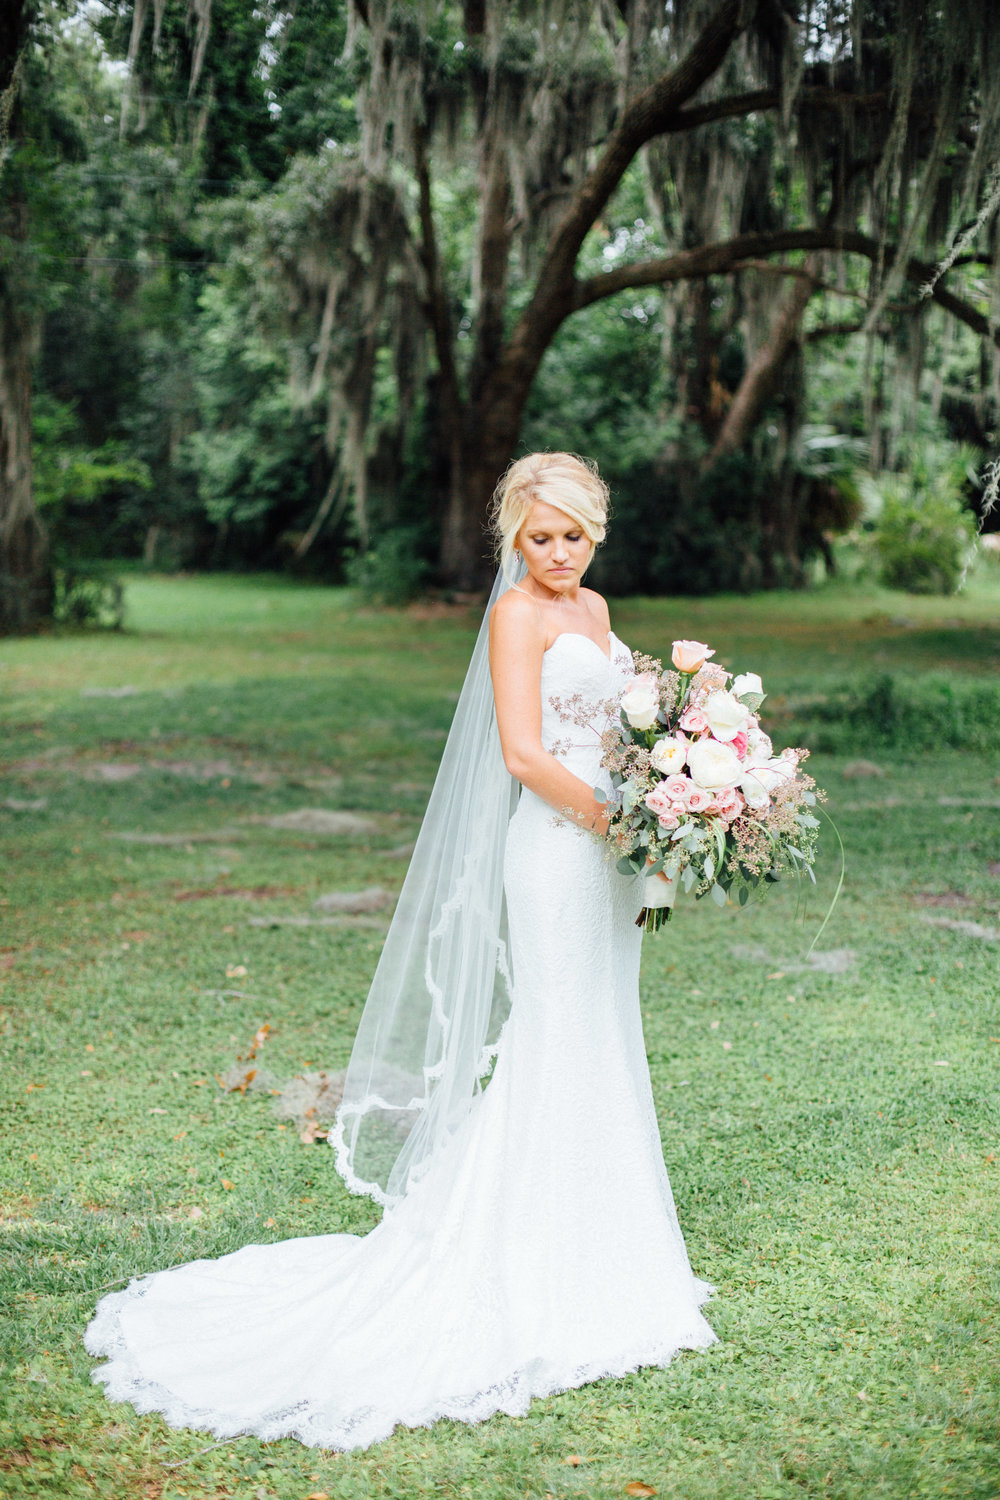 anna-benton-photography-savannah-bridal-boutique-ivory-and-beau-bridal-boutique-ti-adora-7552-lace-wedding-dress-jaclyn-jordan-anne-veil-southern-wedding-savannah-wedding-coastal-wedidng-savannah-wedding-planner-savannah-florist-savannah-weddings-5.jpg